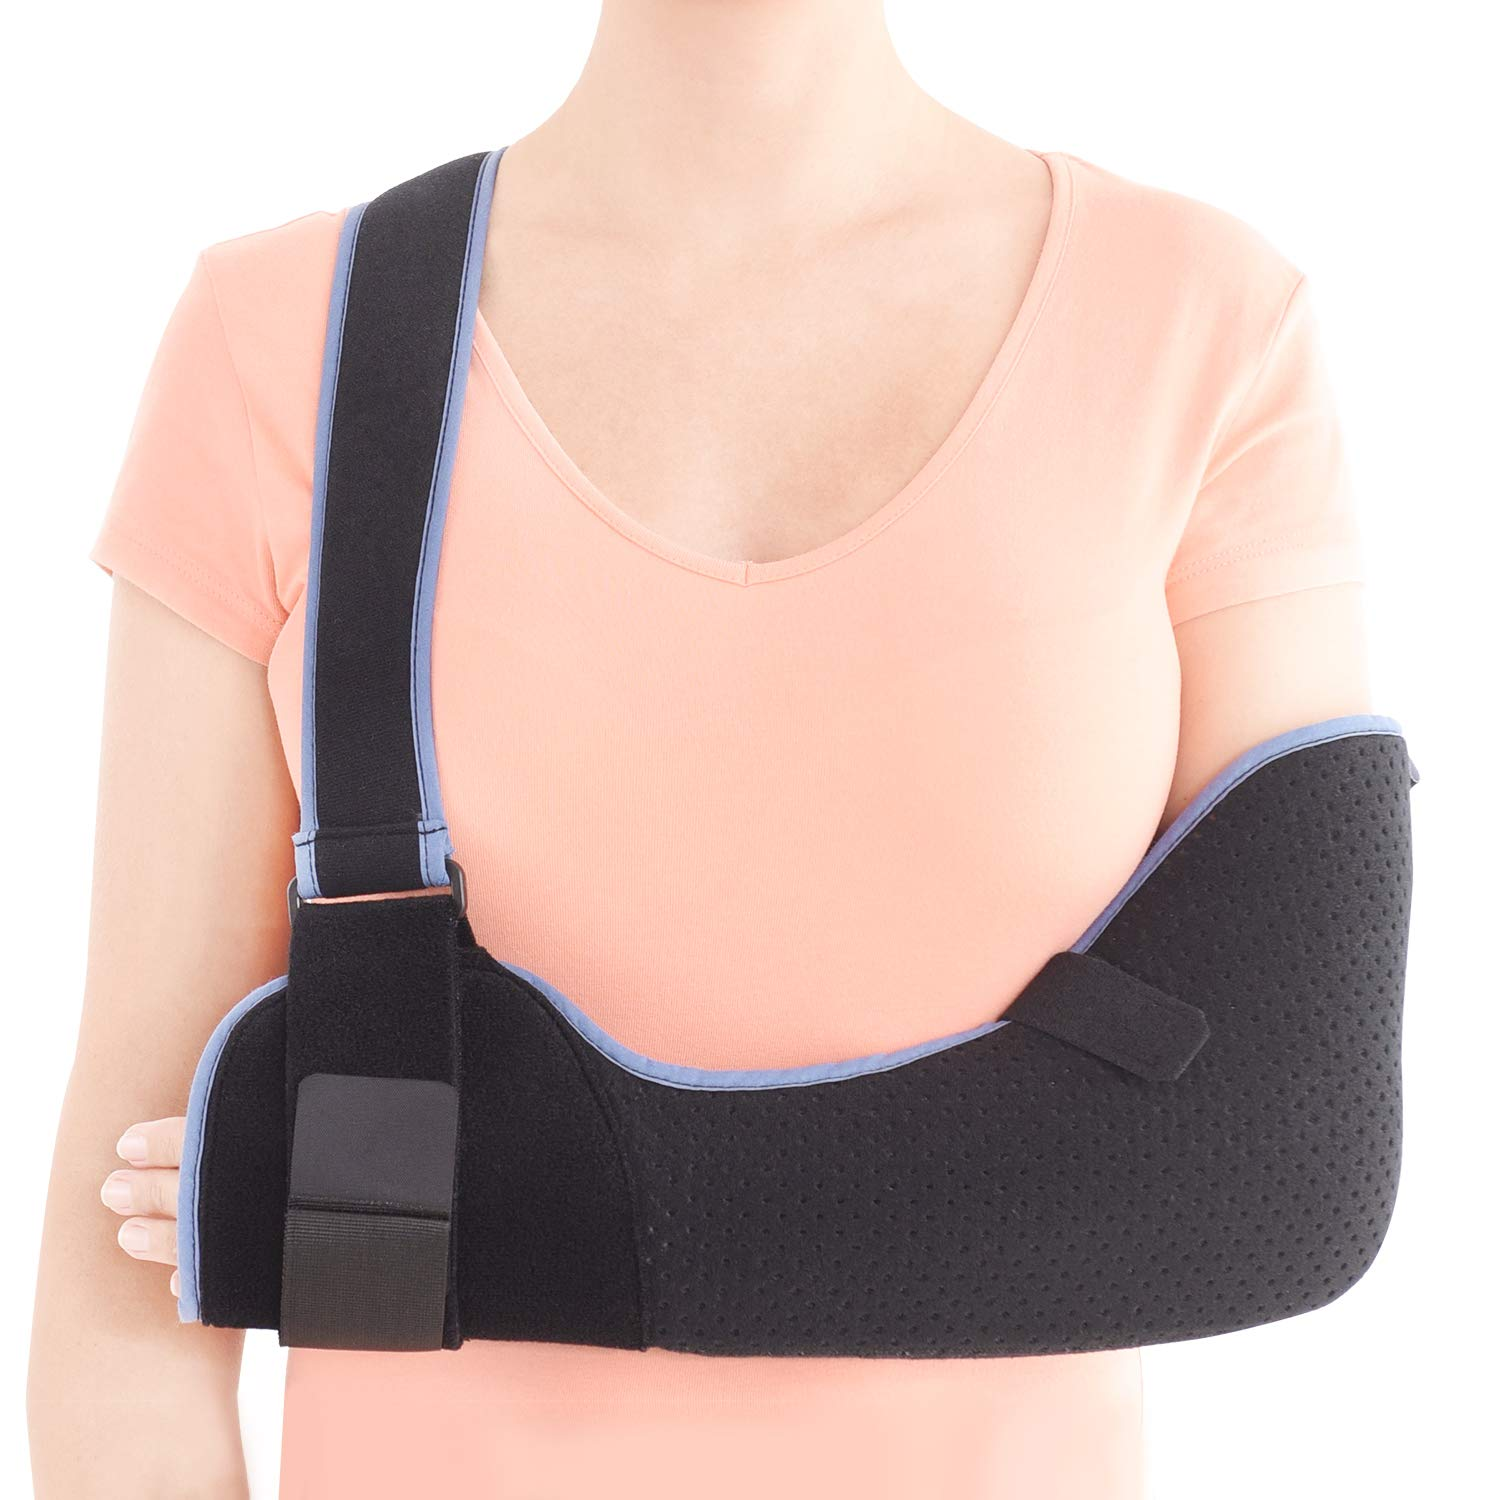 Velpeau Arm Sling Shoulder Immobilizer - Rotator Cuff Support Brace - Comfortable Medical Sling for Shoulder Injury, Left and Right Arm, Men and Women, for Broken, Dislocated, Fracture, Strain (Large)